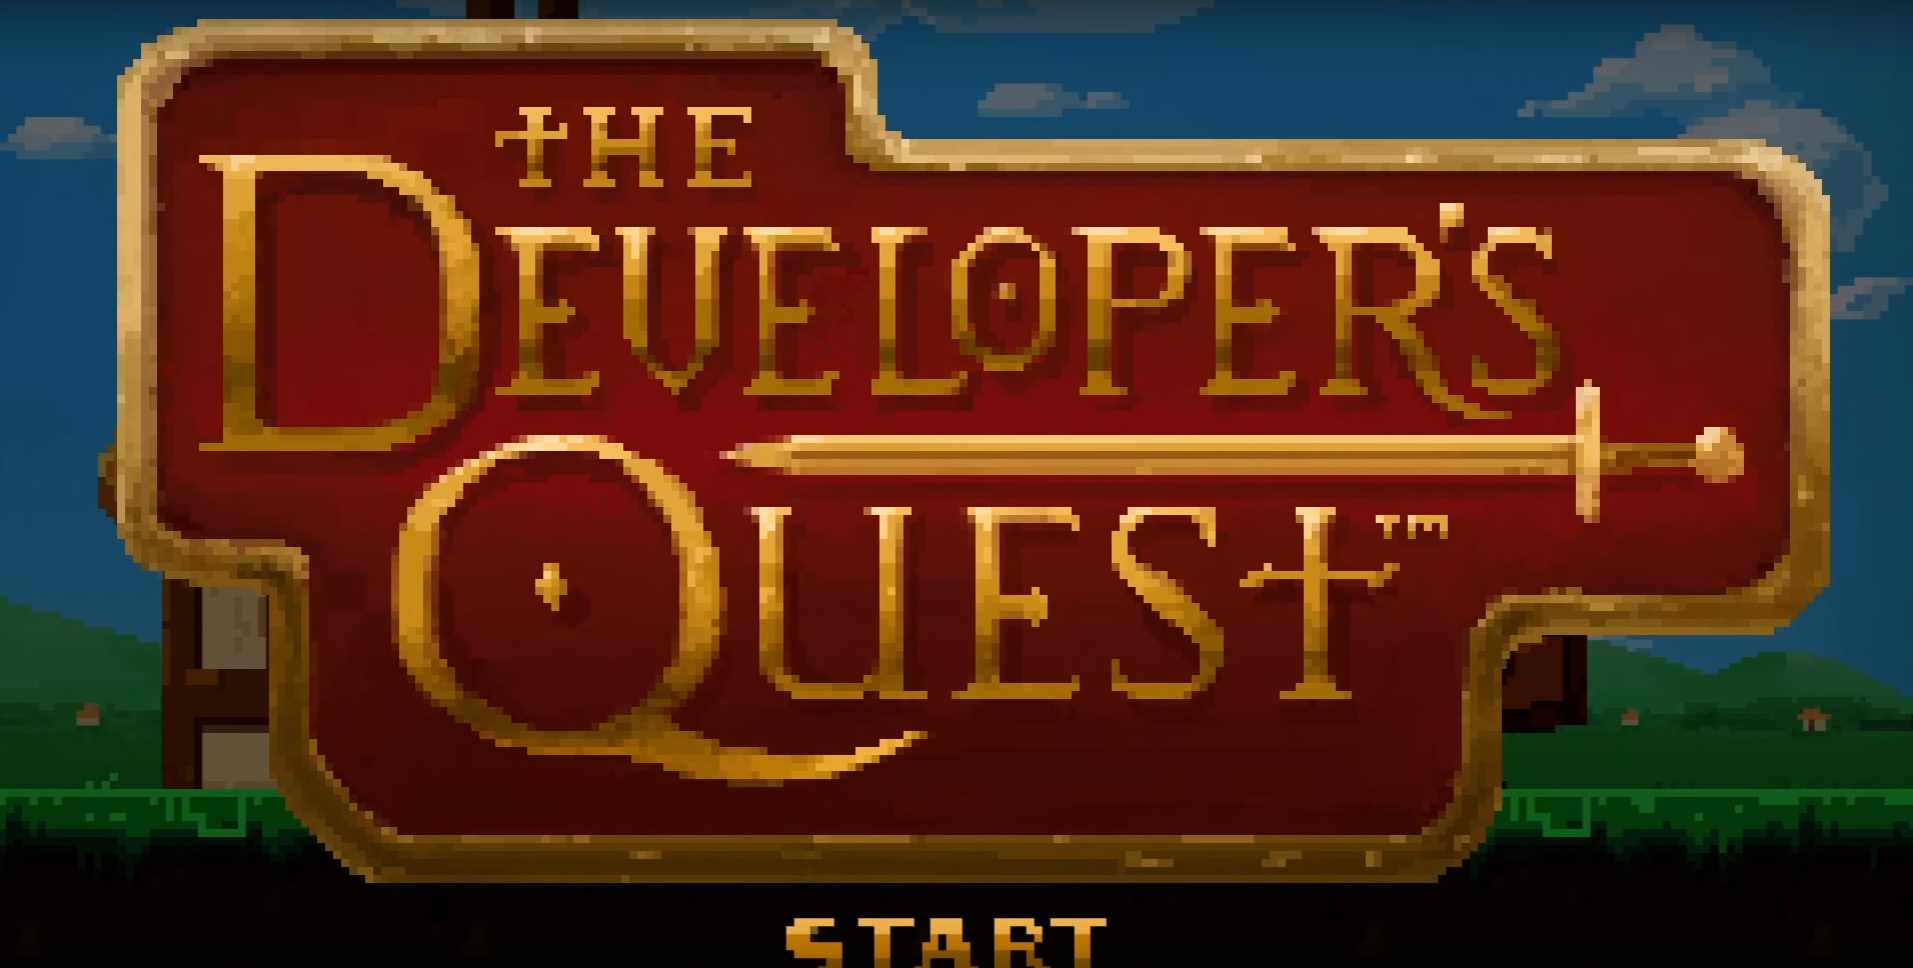 Game Developer quest